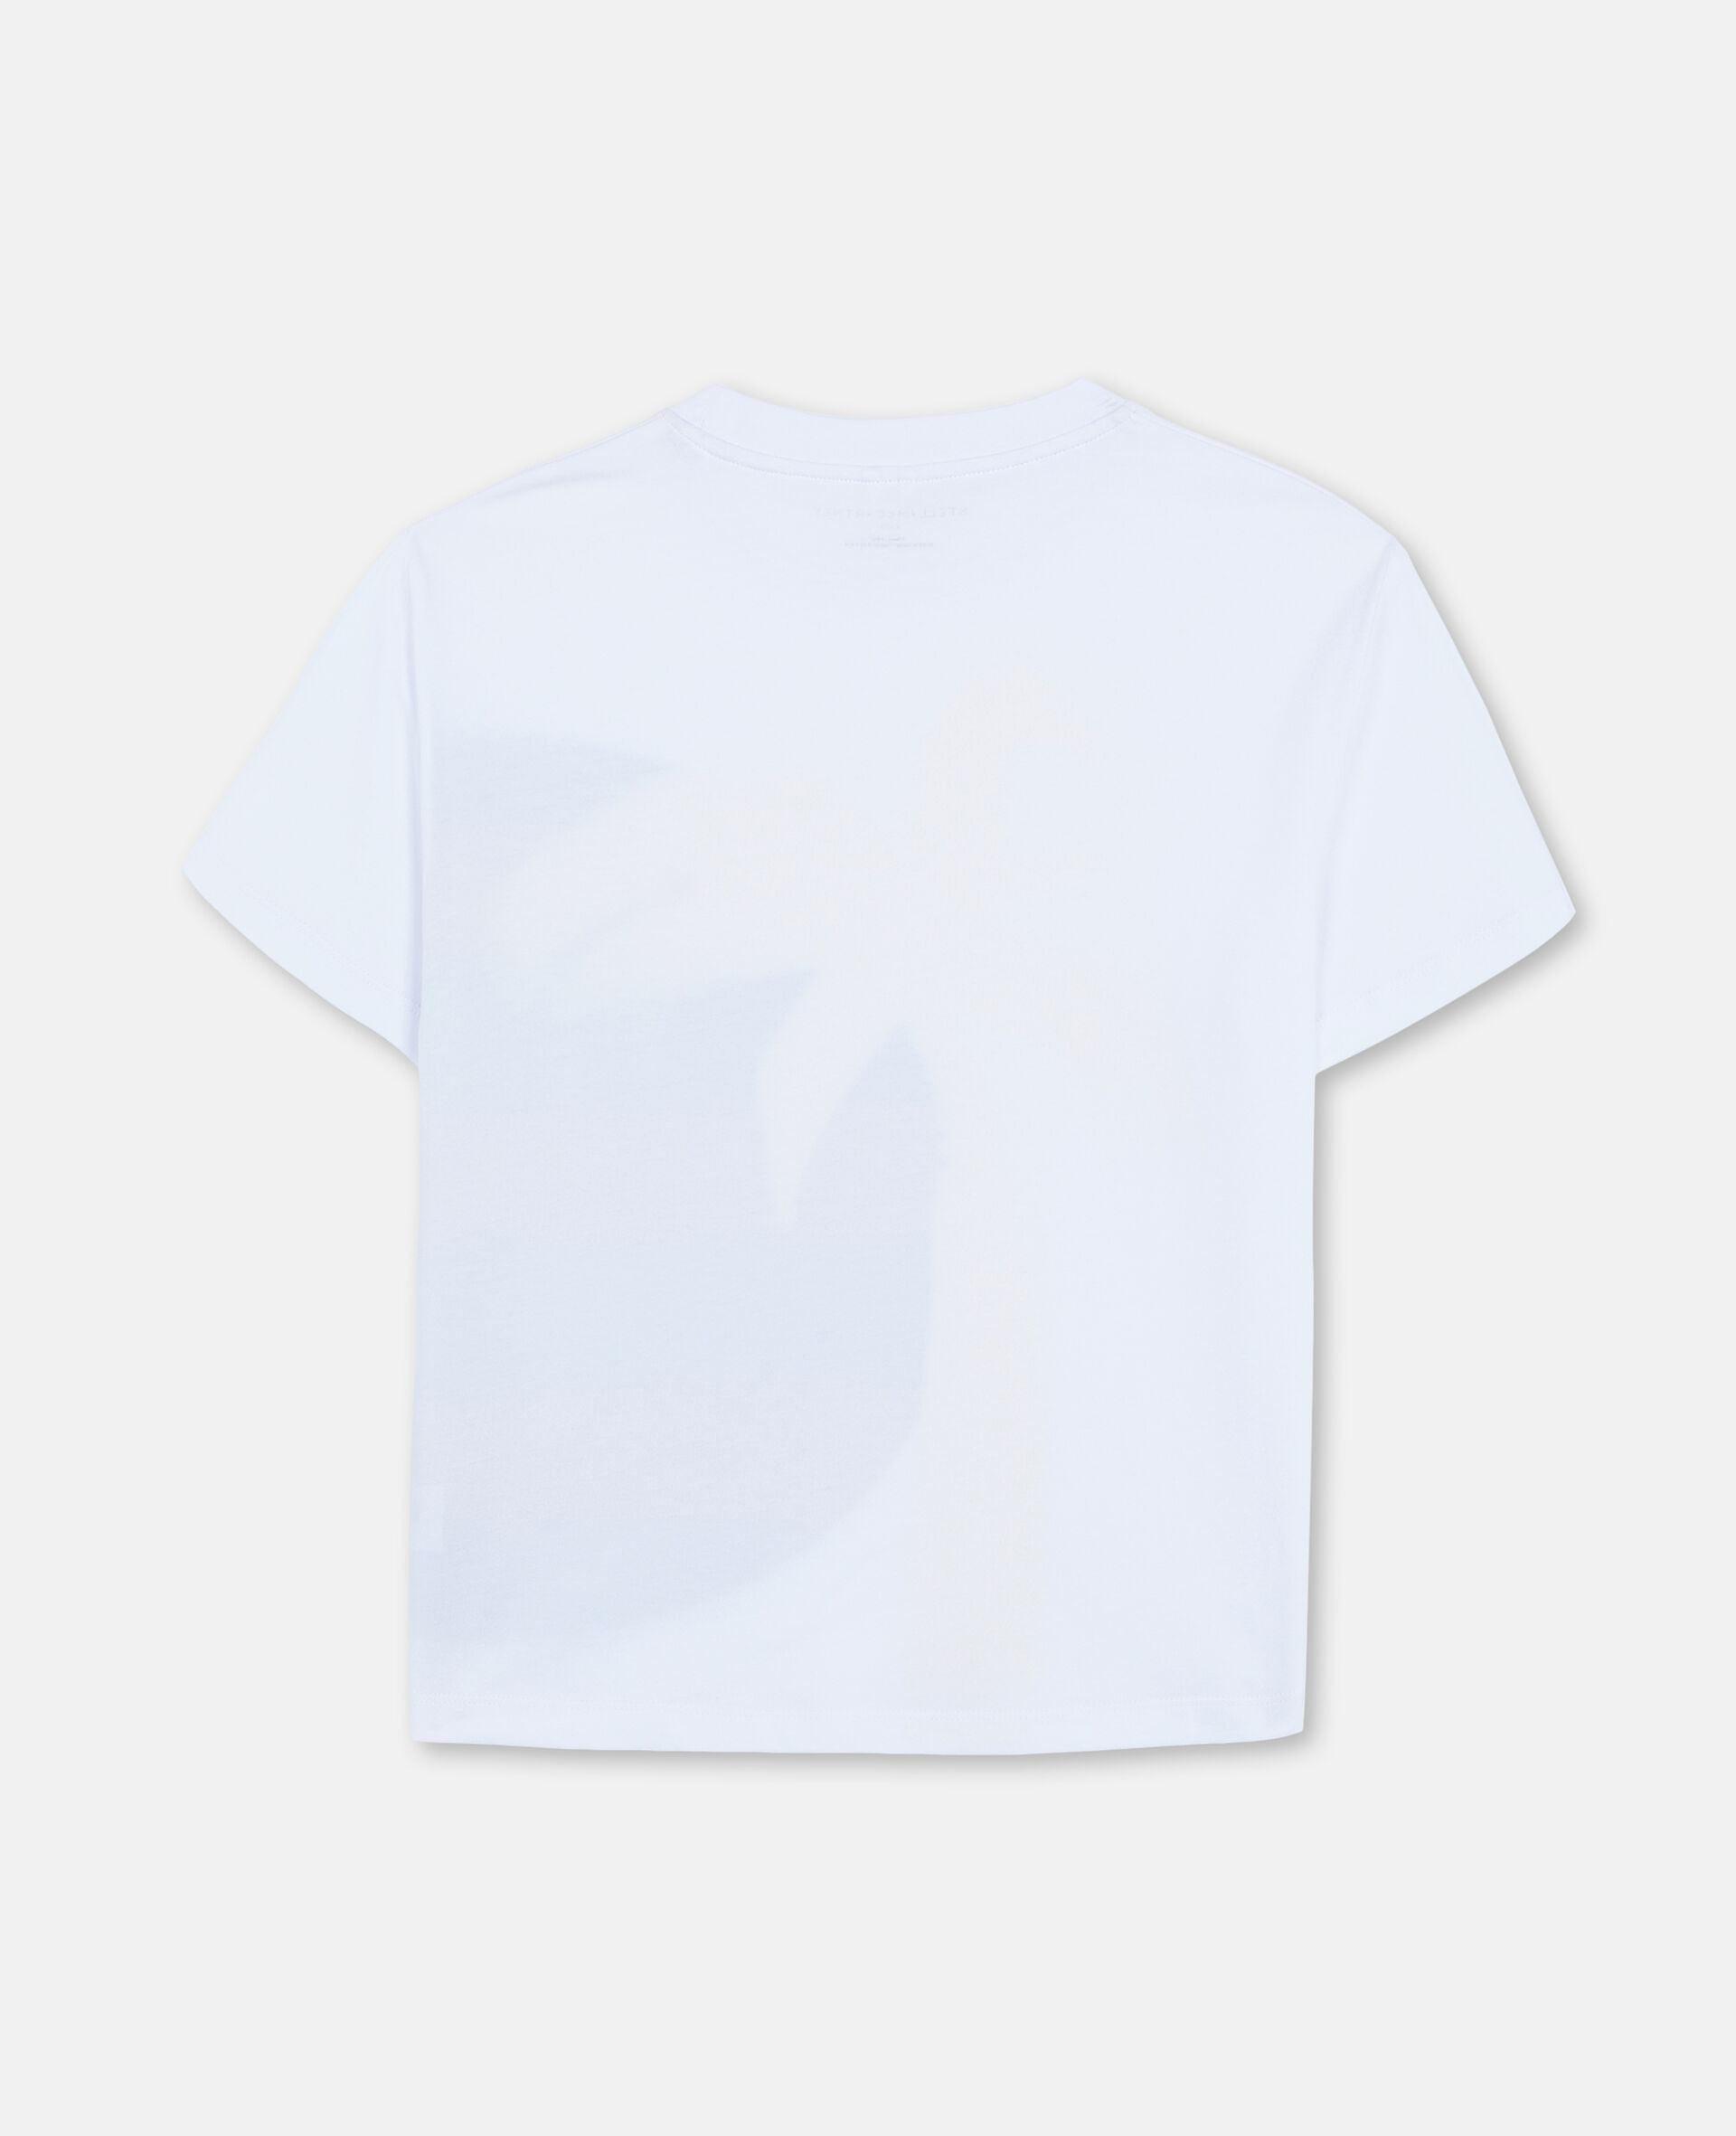 Oversize Sun and Palm Cotton T-shirt -White-large image number 3